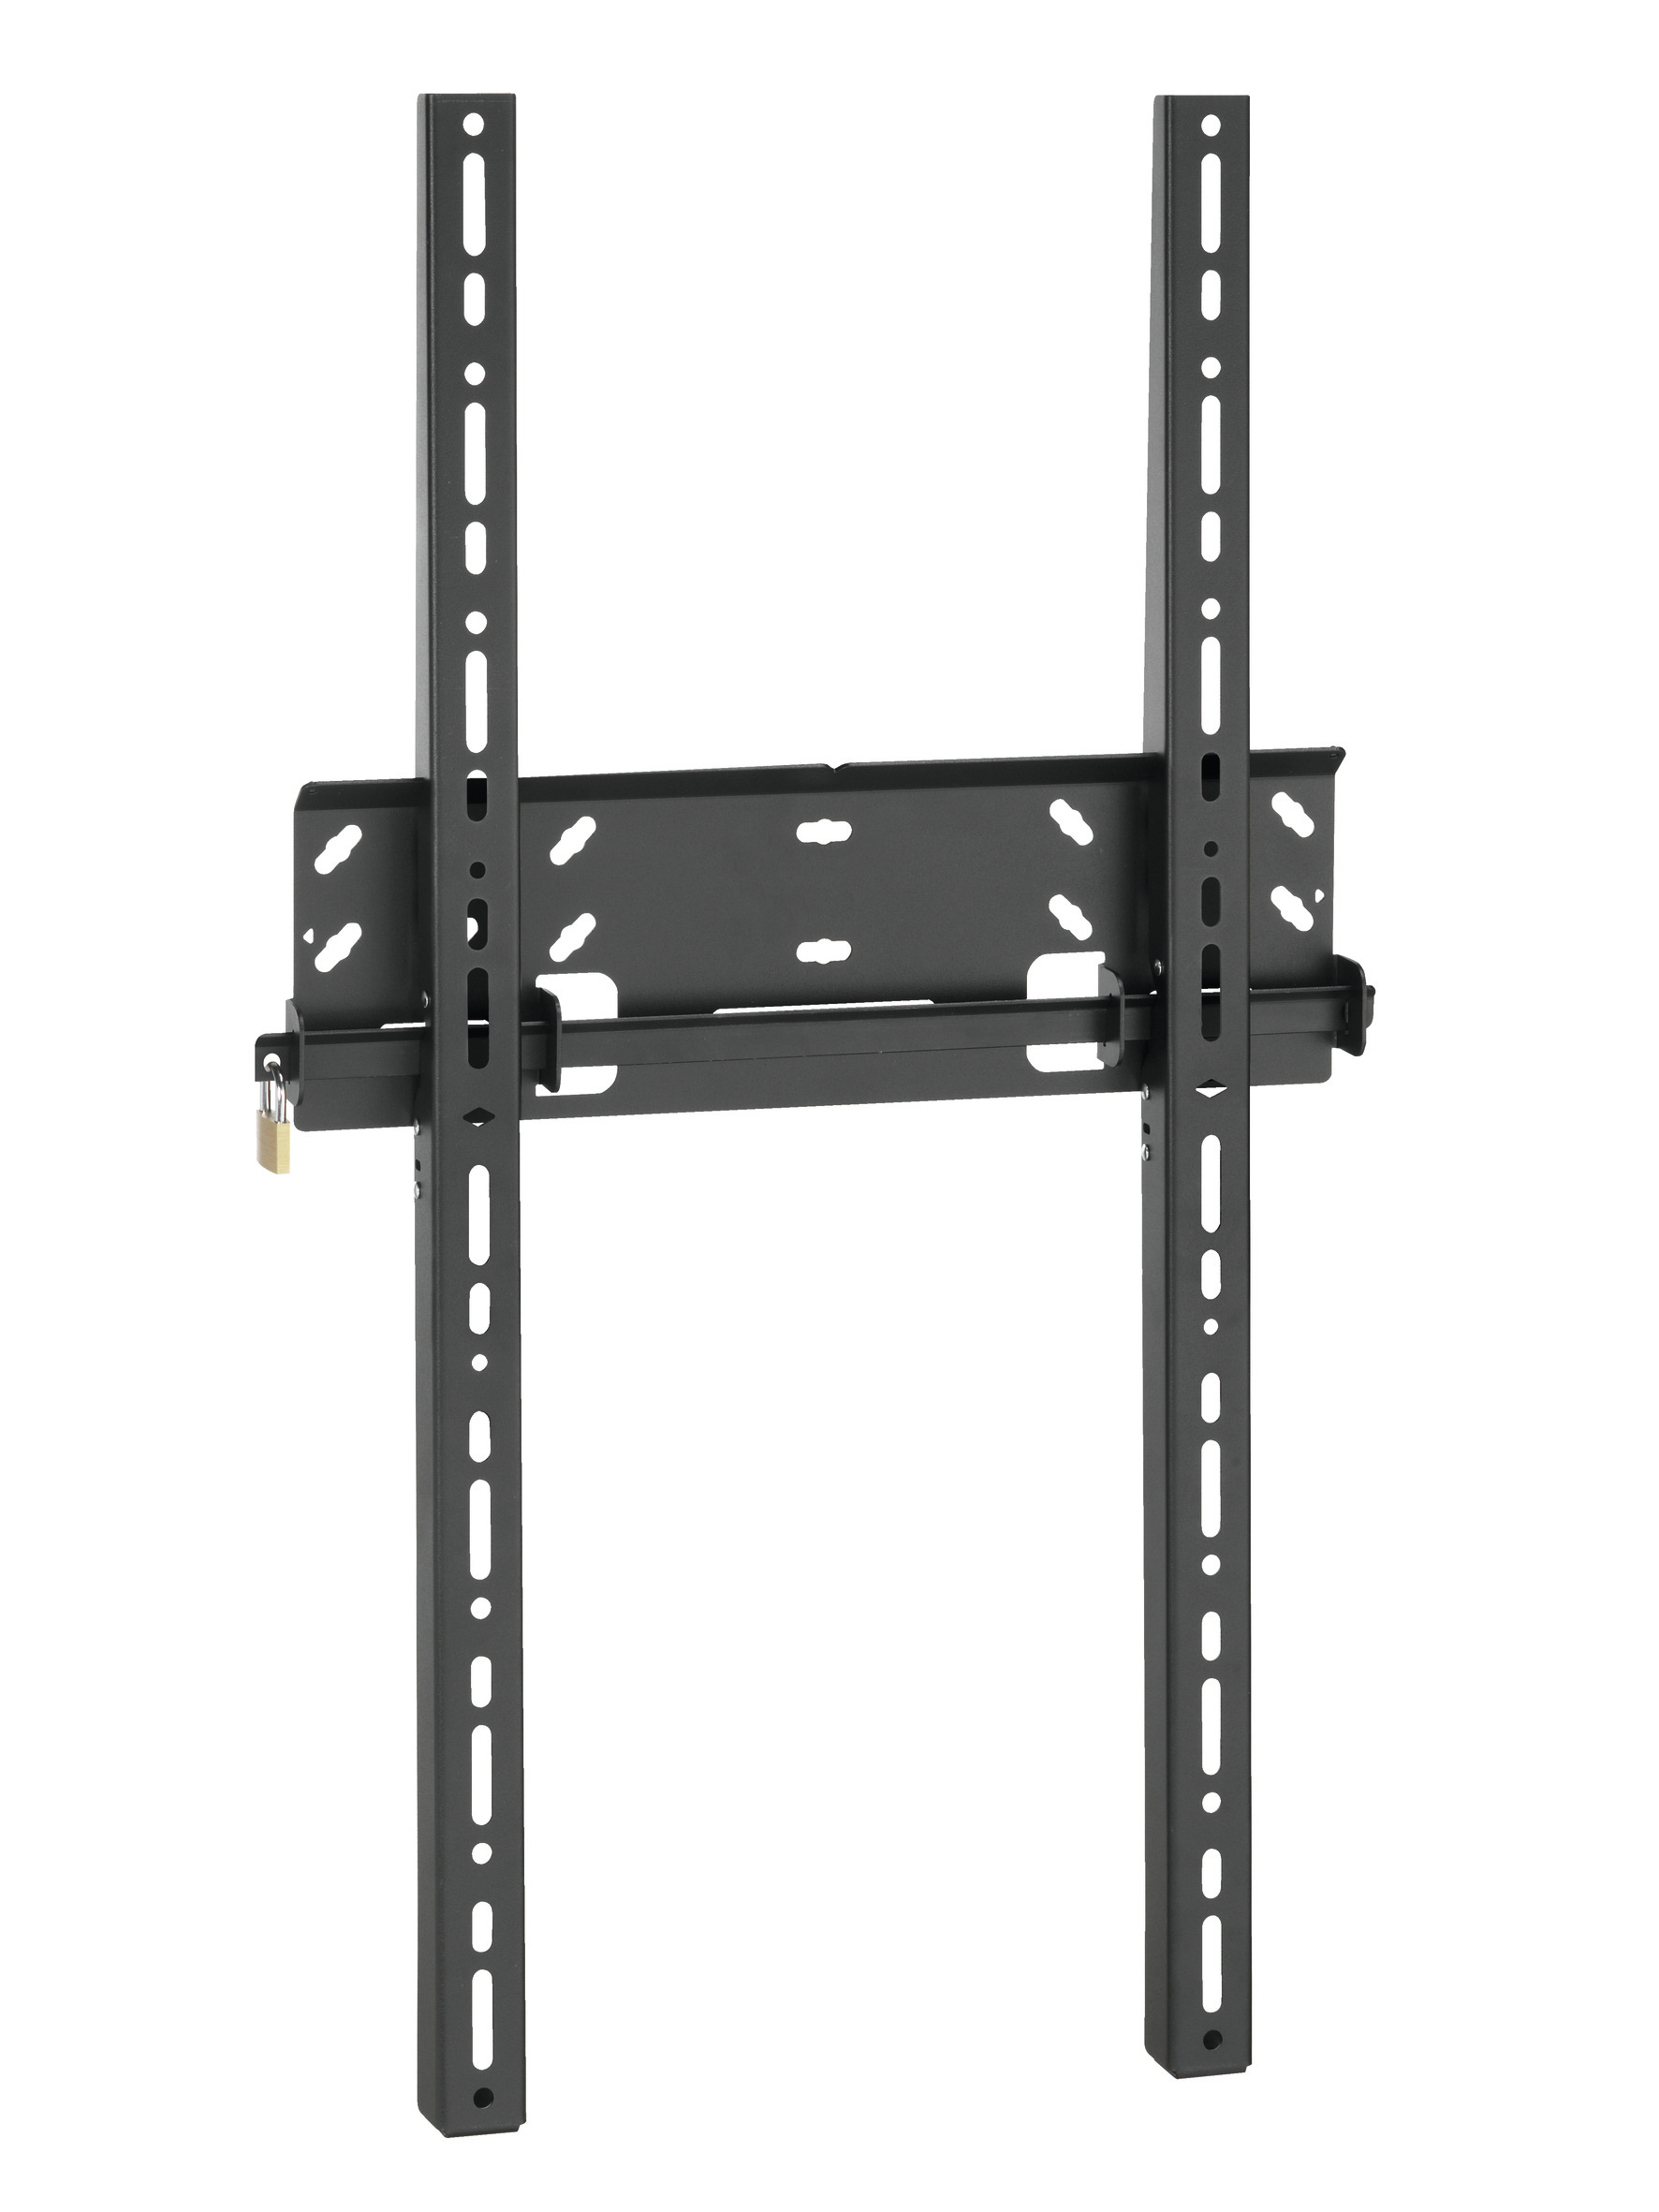 Vogel's PFW 5015 Super flat portrait wall mount